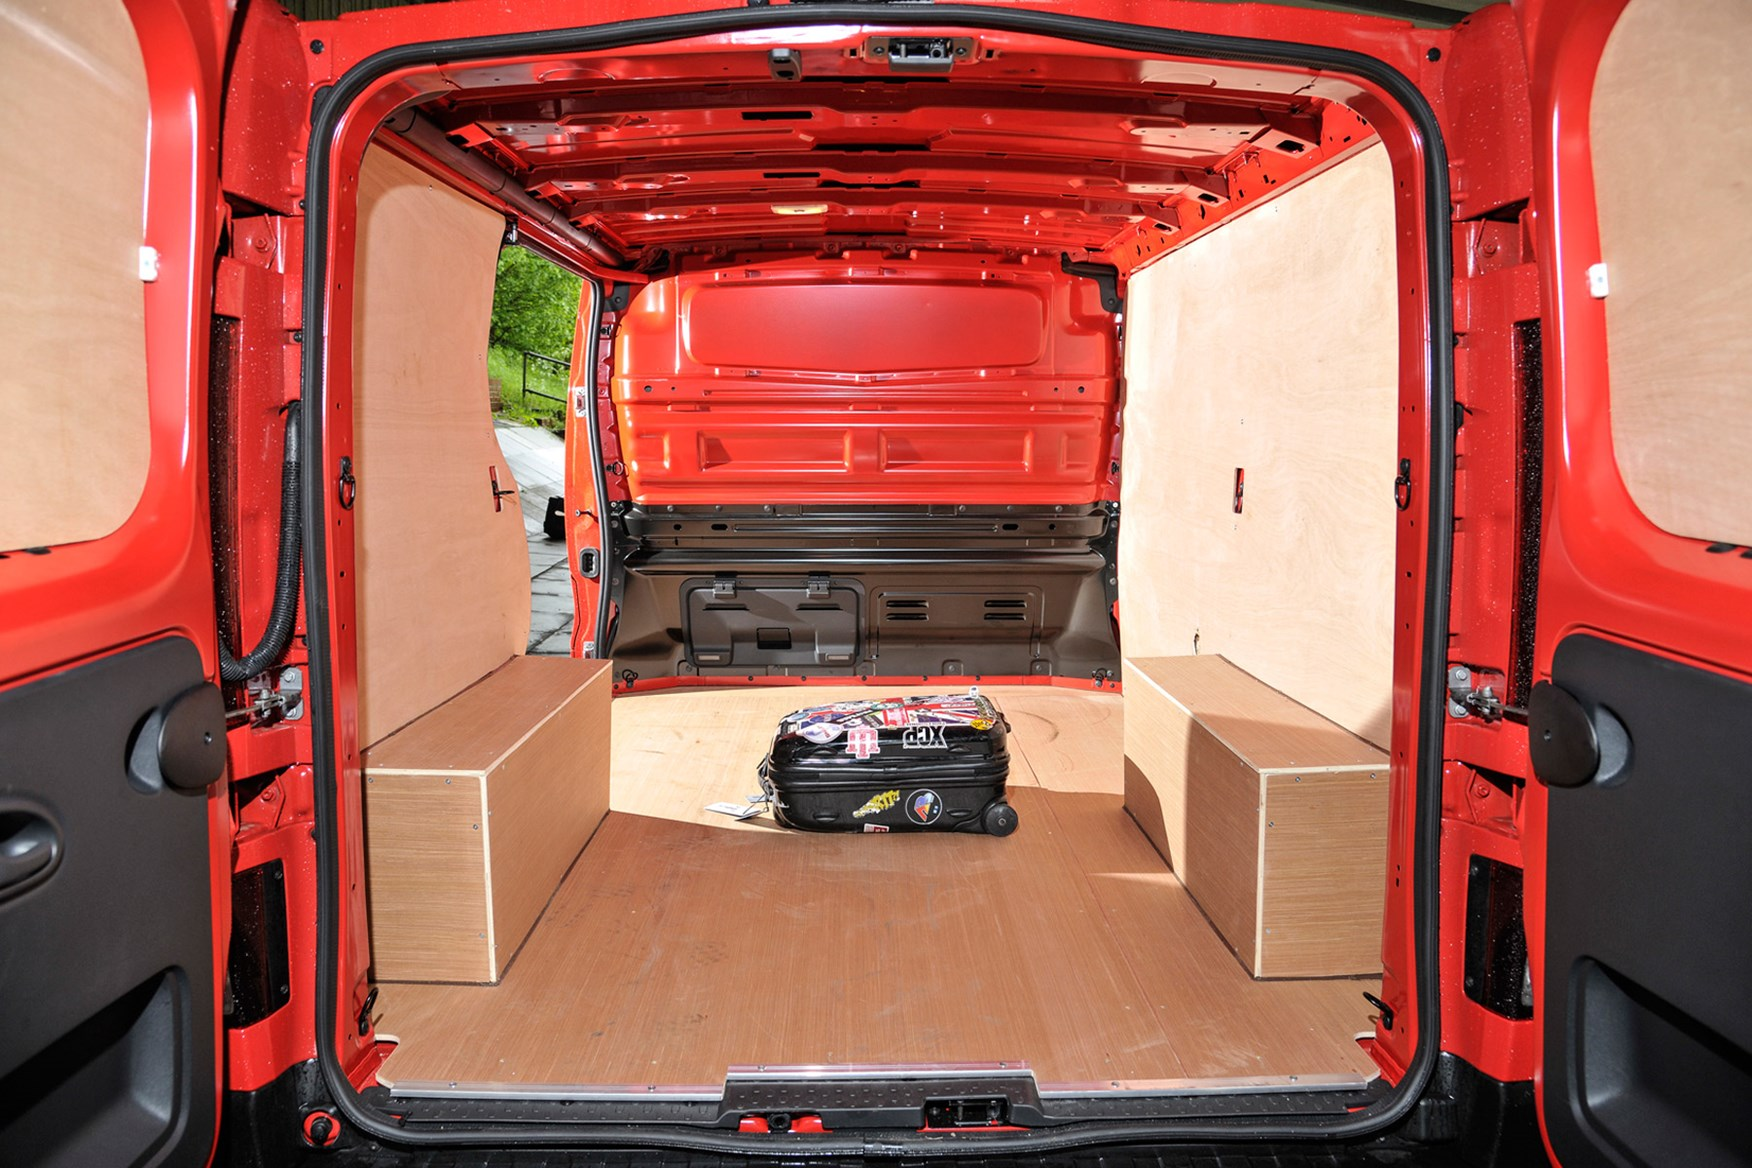 Nissan NV300 full review on Parkers Vans - load area dimensions